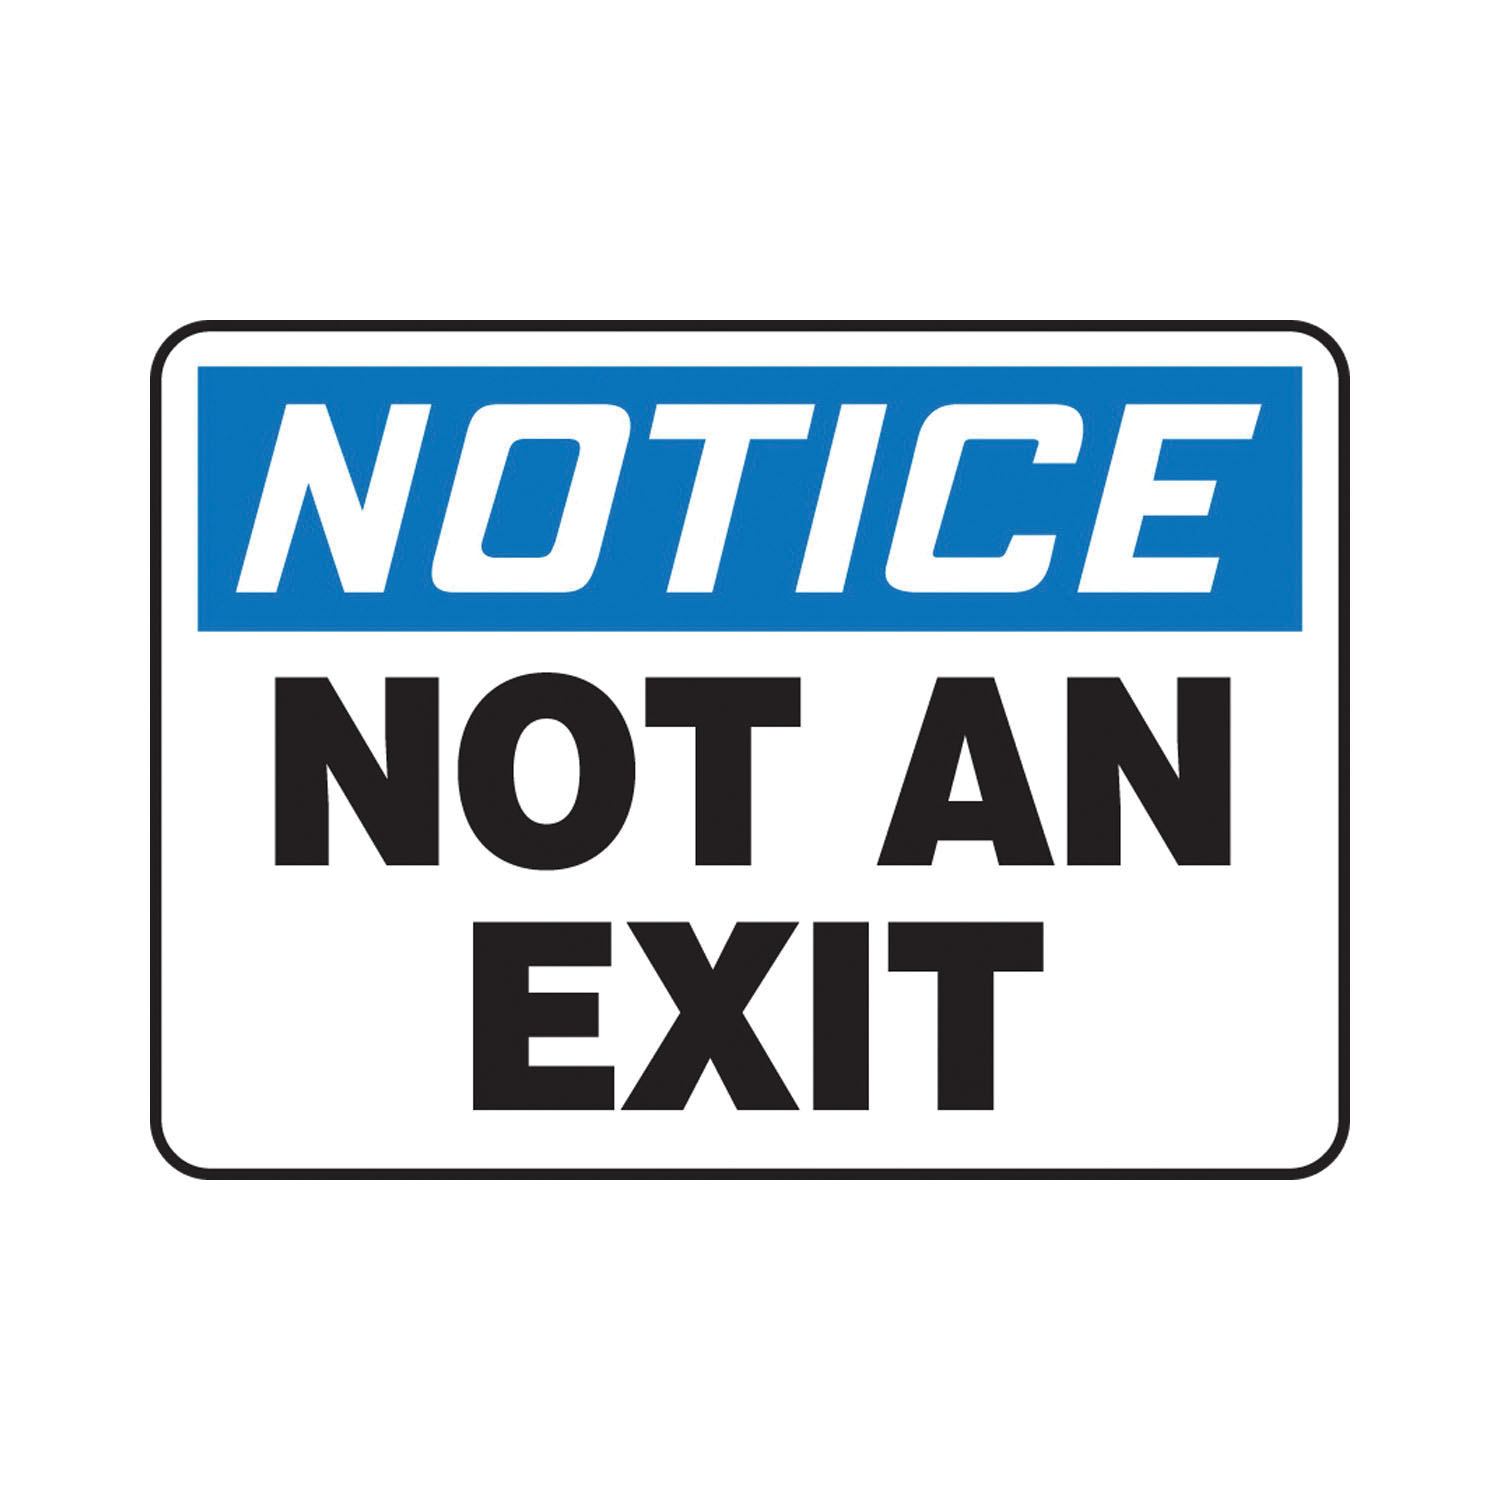 Accuform® MADM832VP Notice Sign, NOTICE, 10 in H x 14 in W, Black on White Sign/White on Blue Header, Plastic, Through Hole Mount